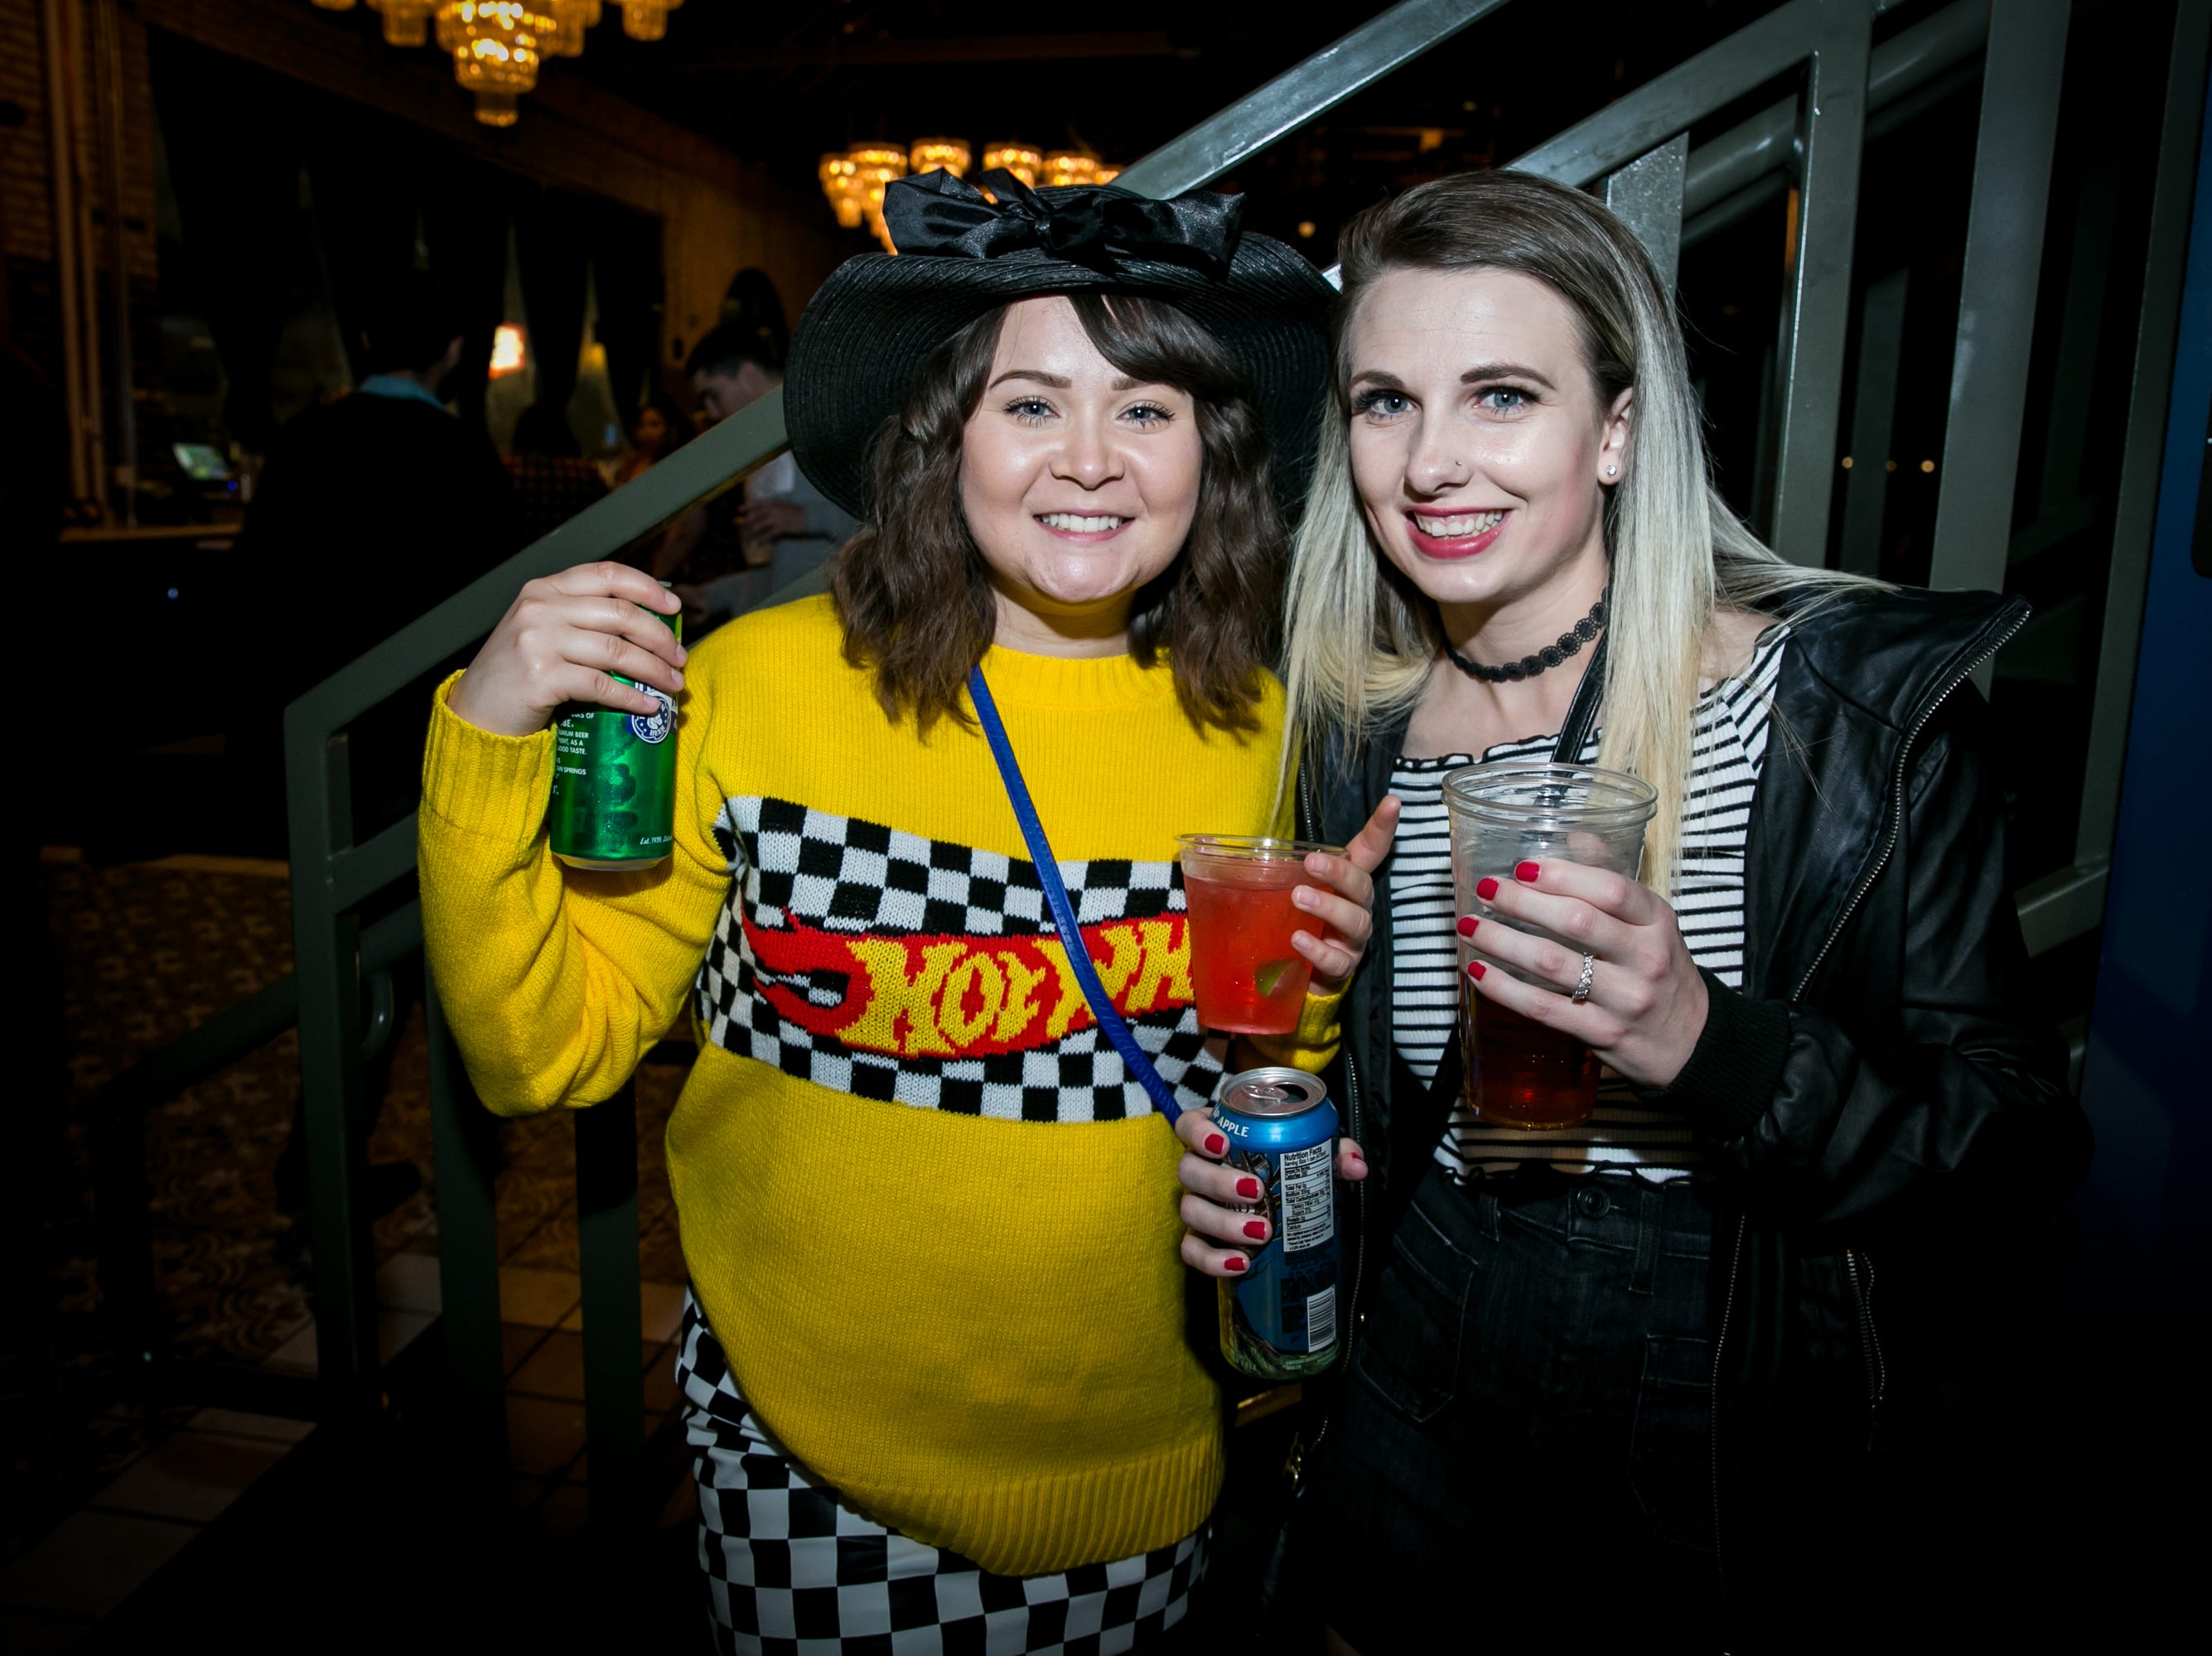 Her sweater paid homage to Hot Wheels during Old School - 90's Hip Hop Dance Party at The Van Buren on Friday, November 30, 2018.